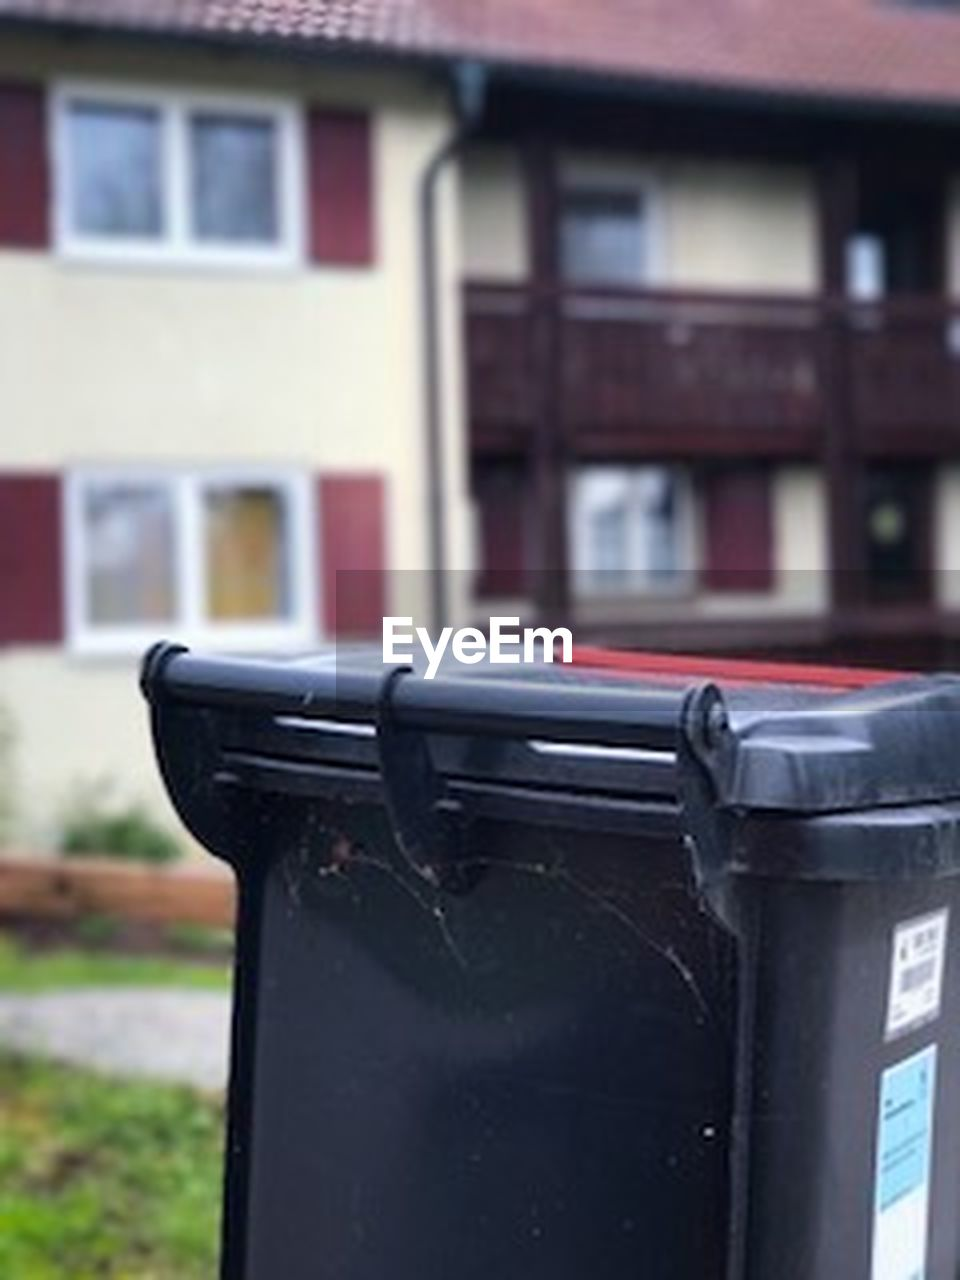 garbage, garbage bin, garbage can, container, focus on foreground, building exterior, no people, built structure, outdoors, aluminum, day, architecture, close-up